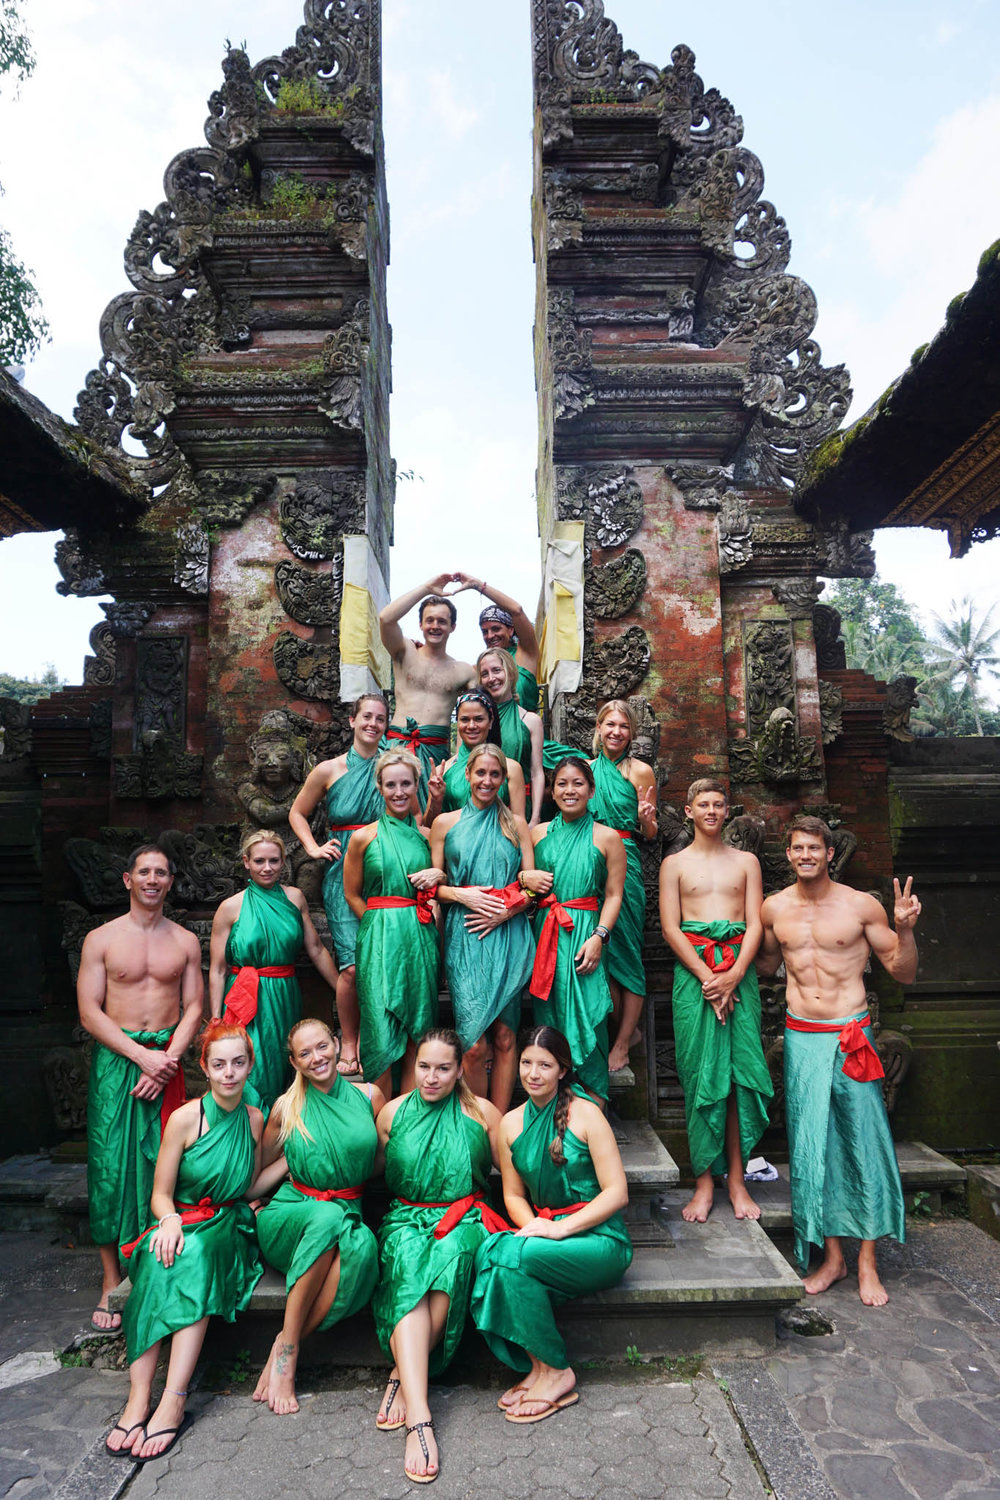 Visiting the Tirta Empul Holy Water Temple